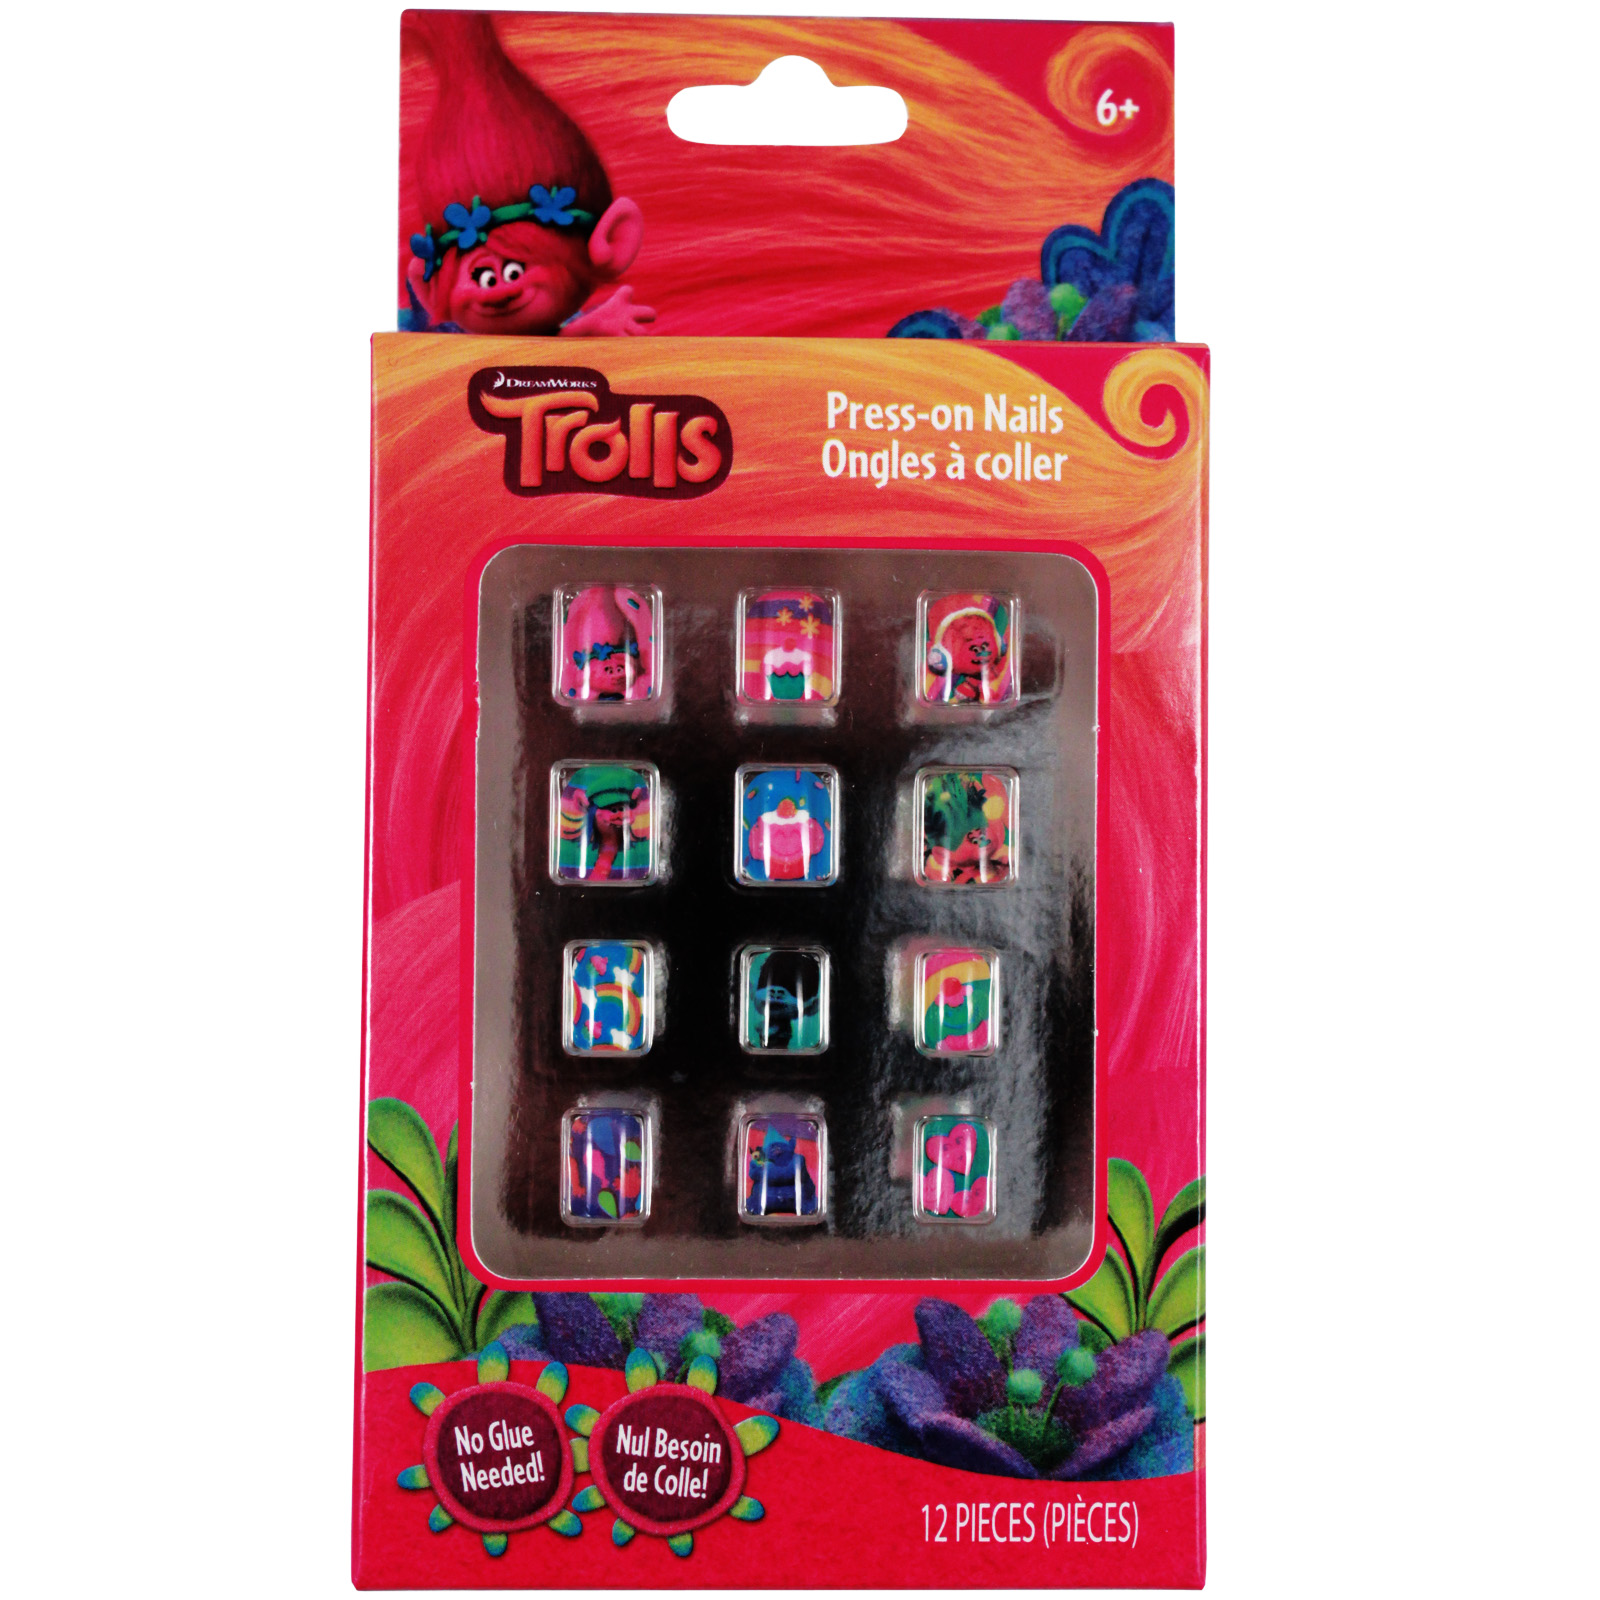 Dreamworks Trolls Princess Poppy and Snack Pack Press on Nails Girls Dress up and Pretend Play 12 piece Gift Set